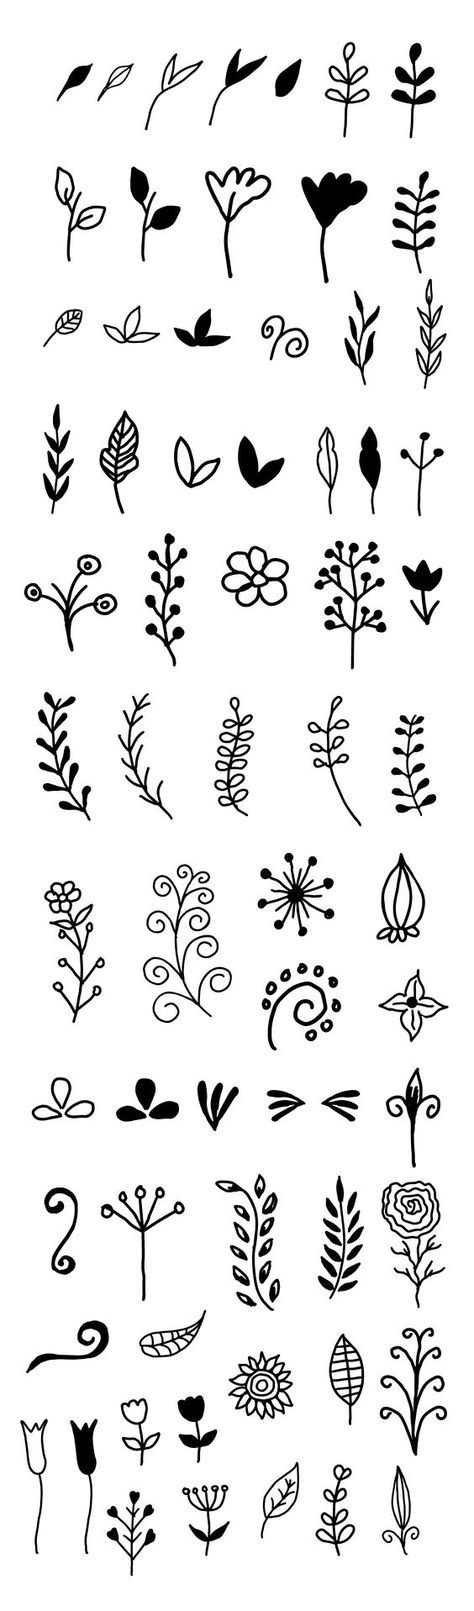 #Vector Hand-drawn #Floral Kit